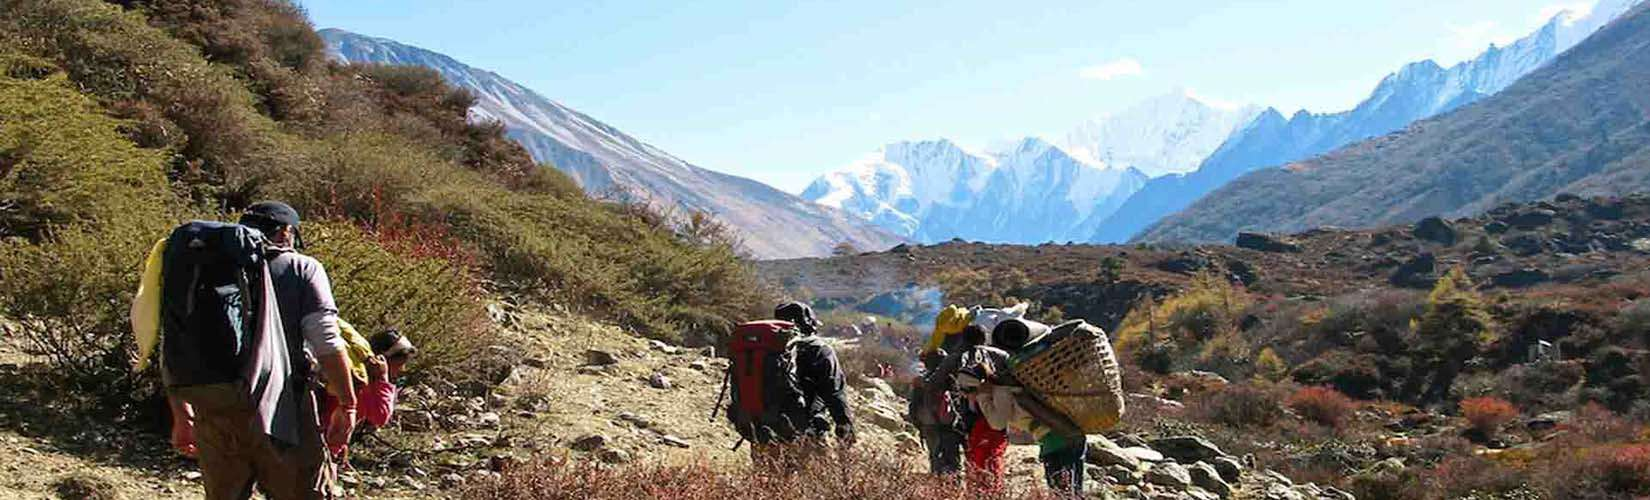 Langtang Valley Trek Itinerary